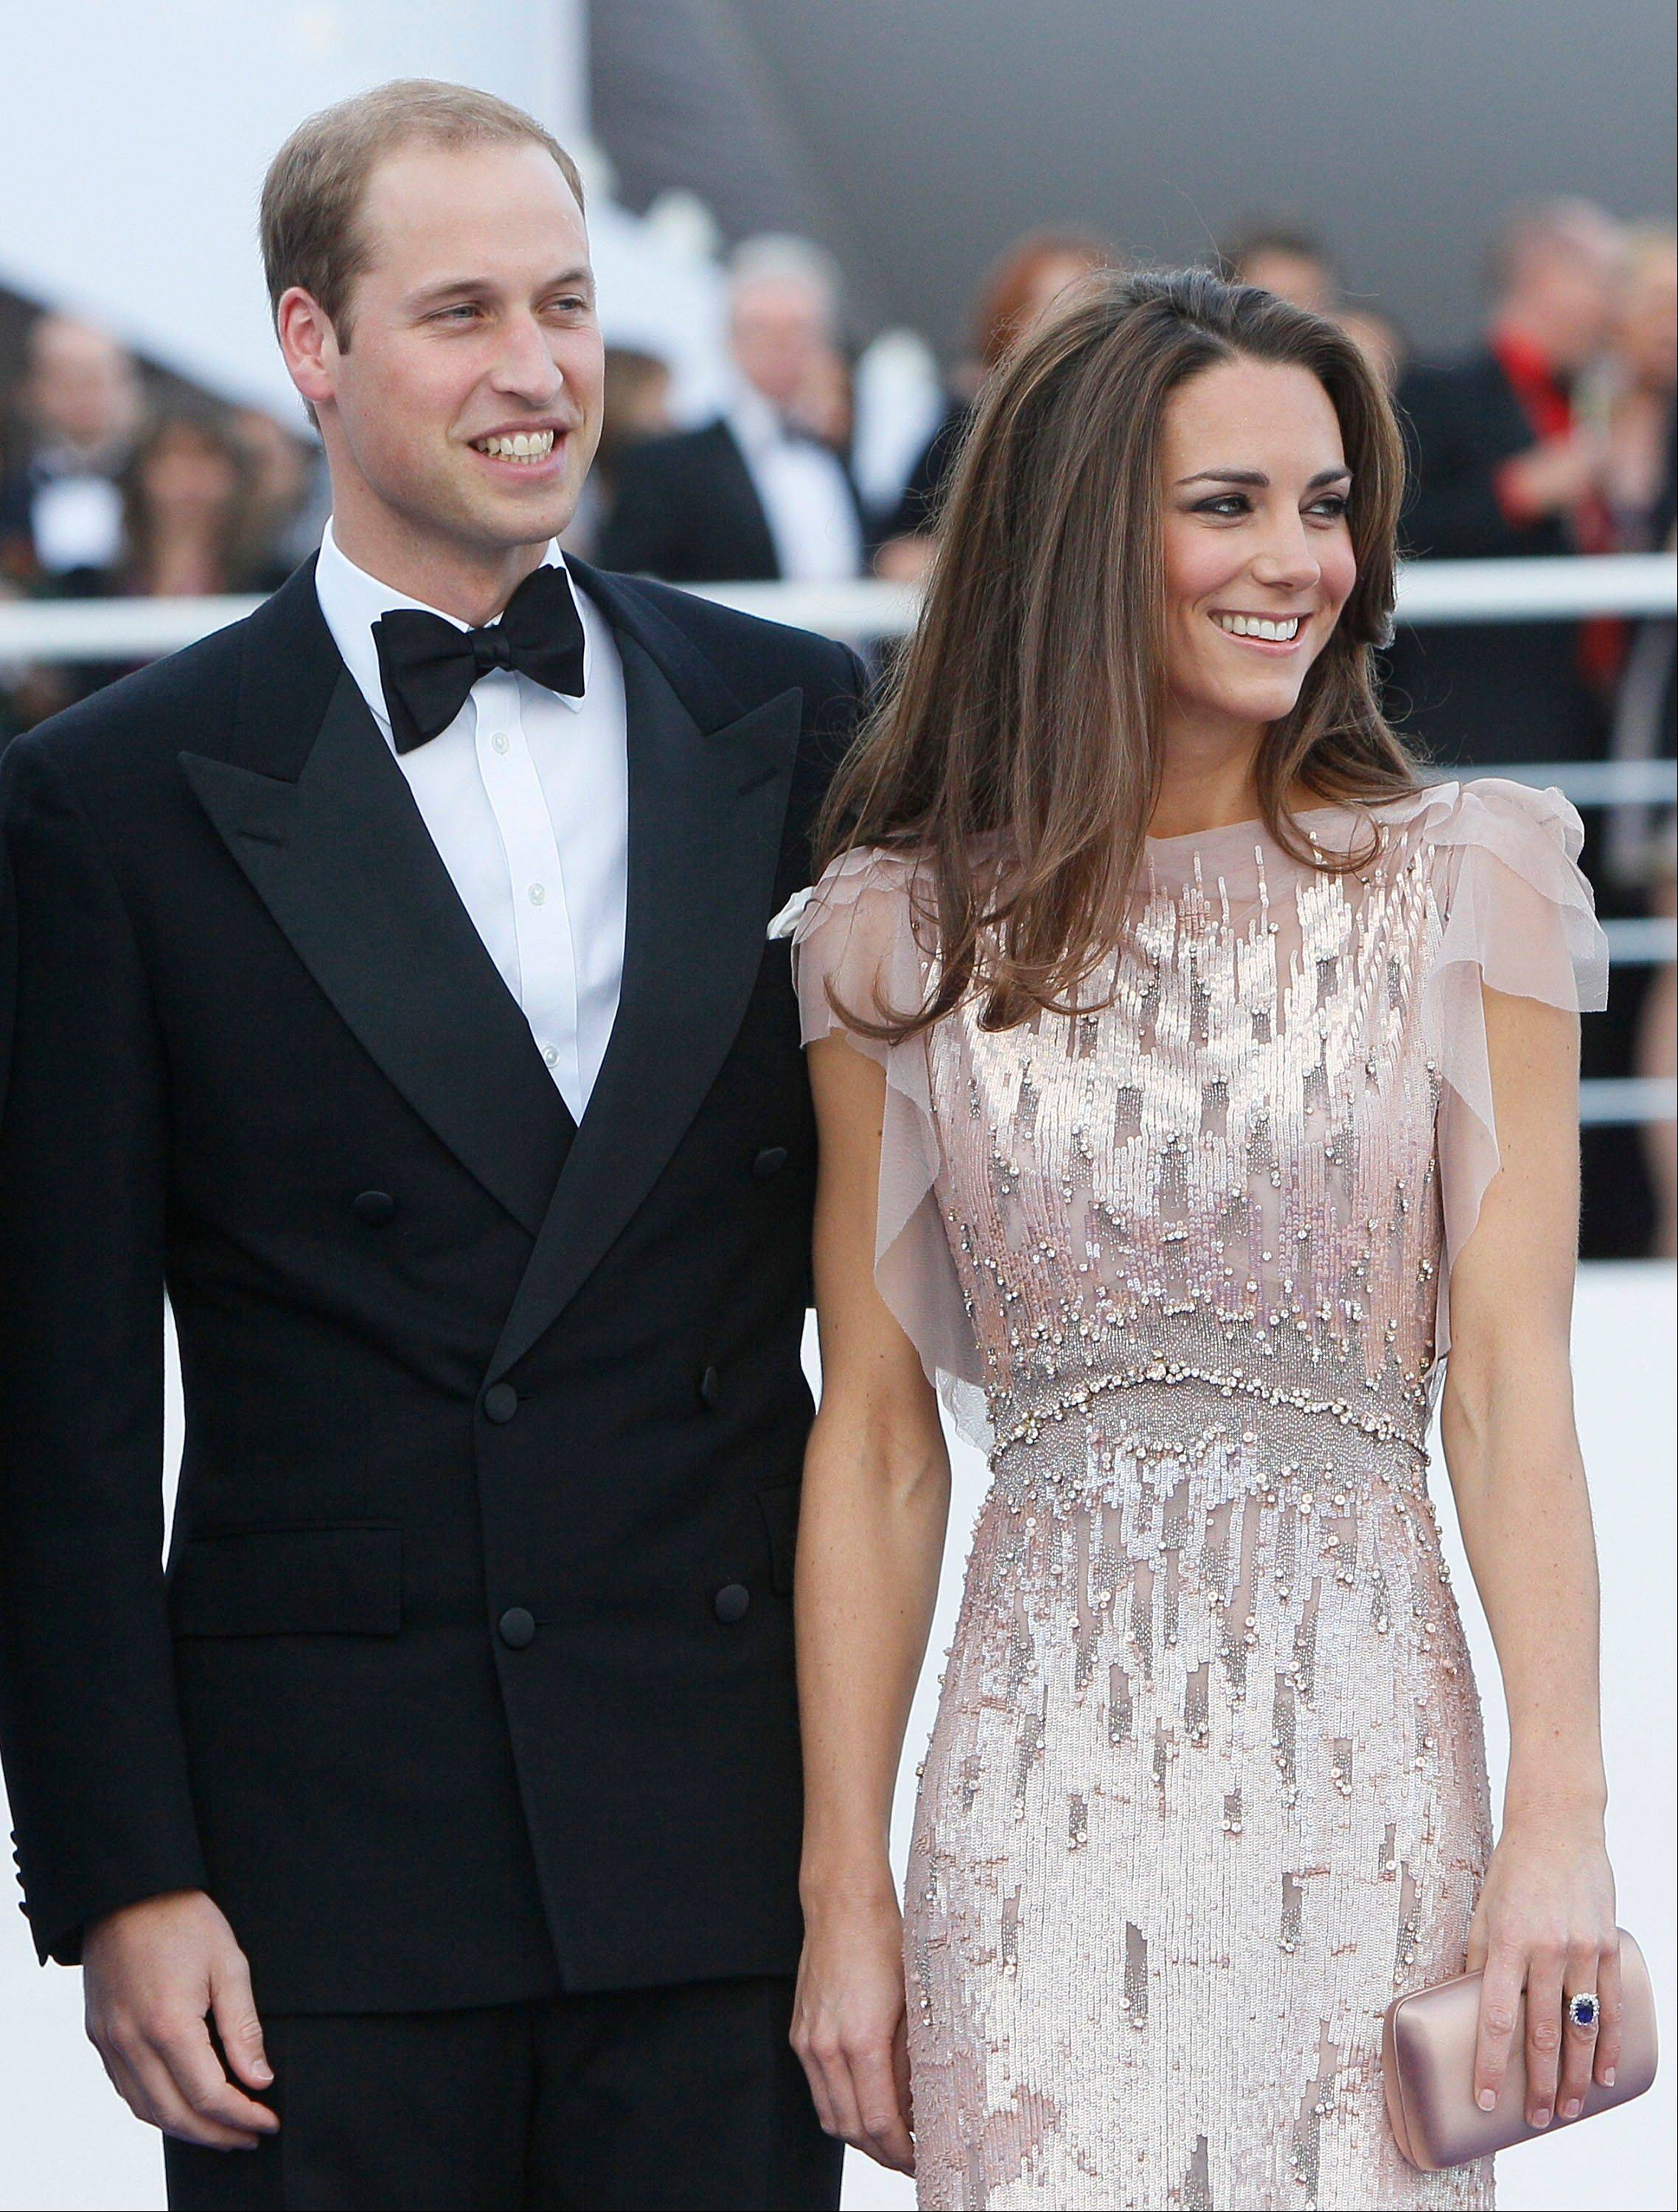 Britain's Prince William, the Duke of Cambridge, and his wife Kate, Duchess of Cambridge, who has been named on the latest Vanity Fair International Best Dressed List.